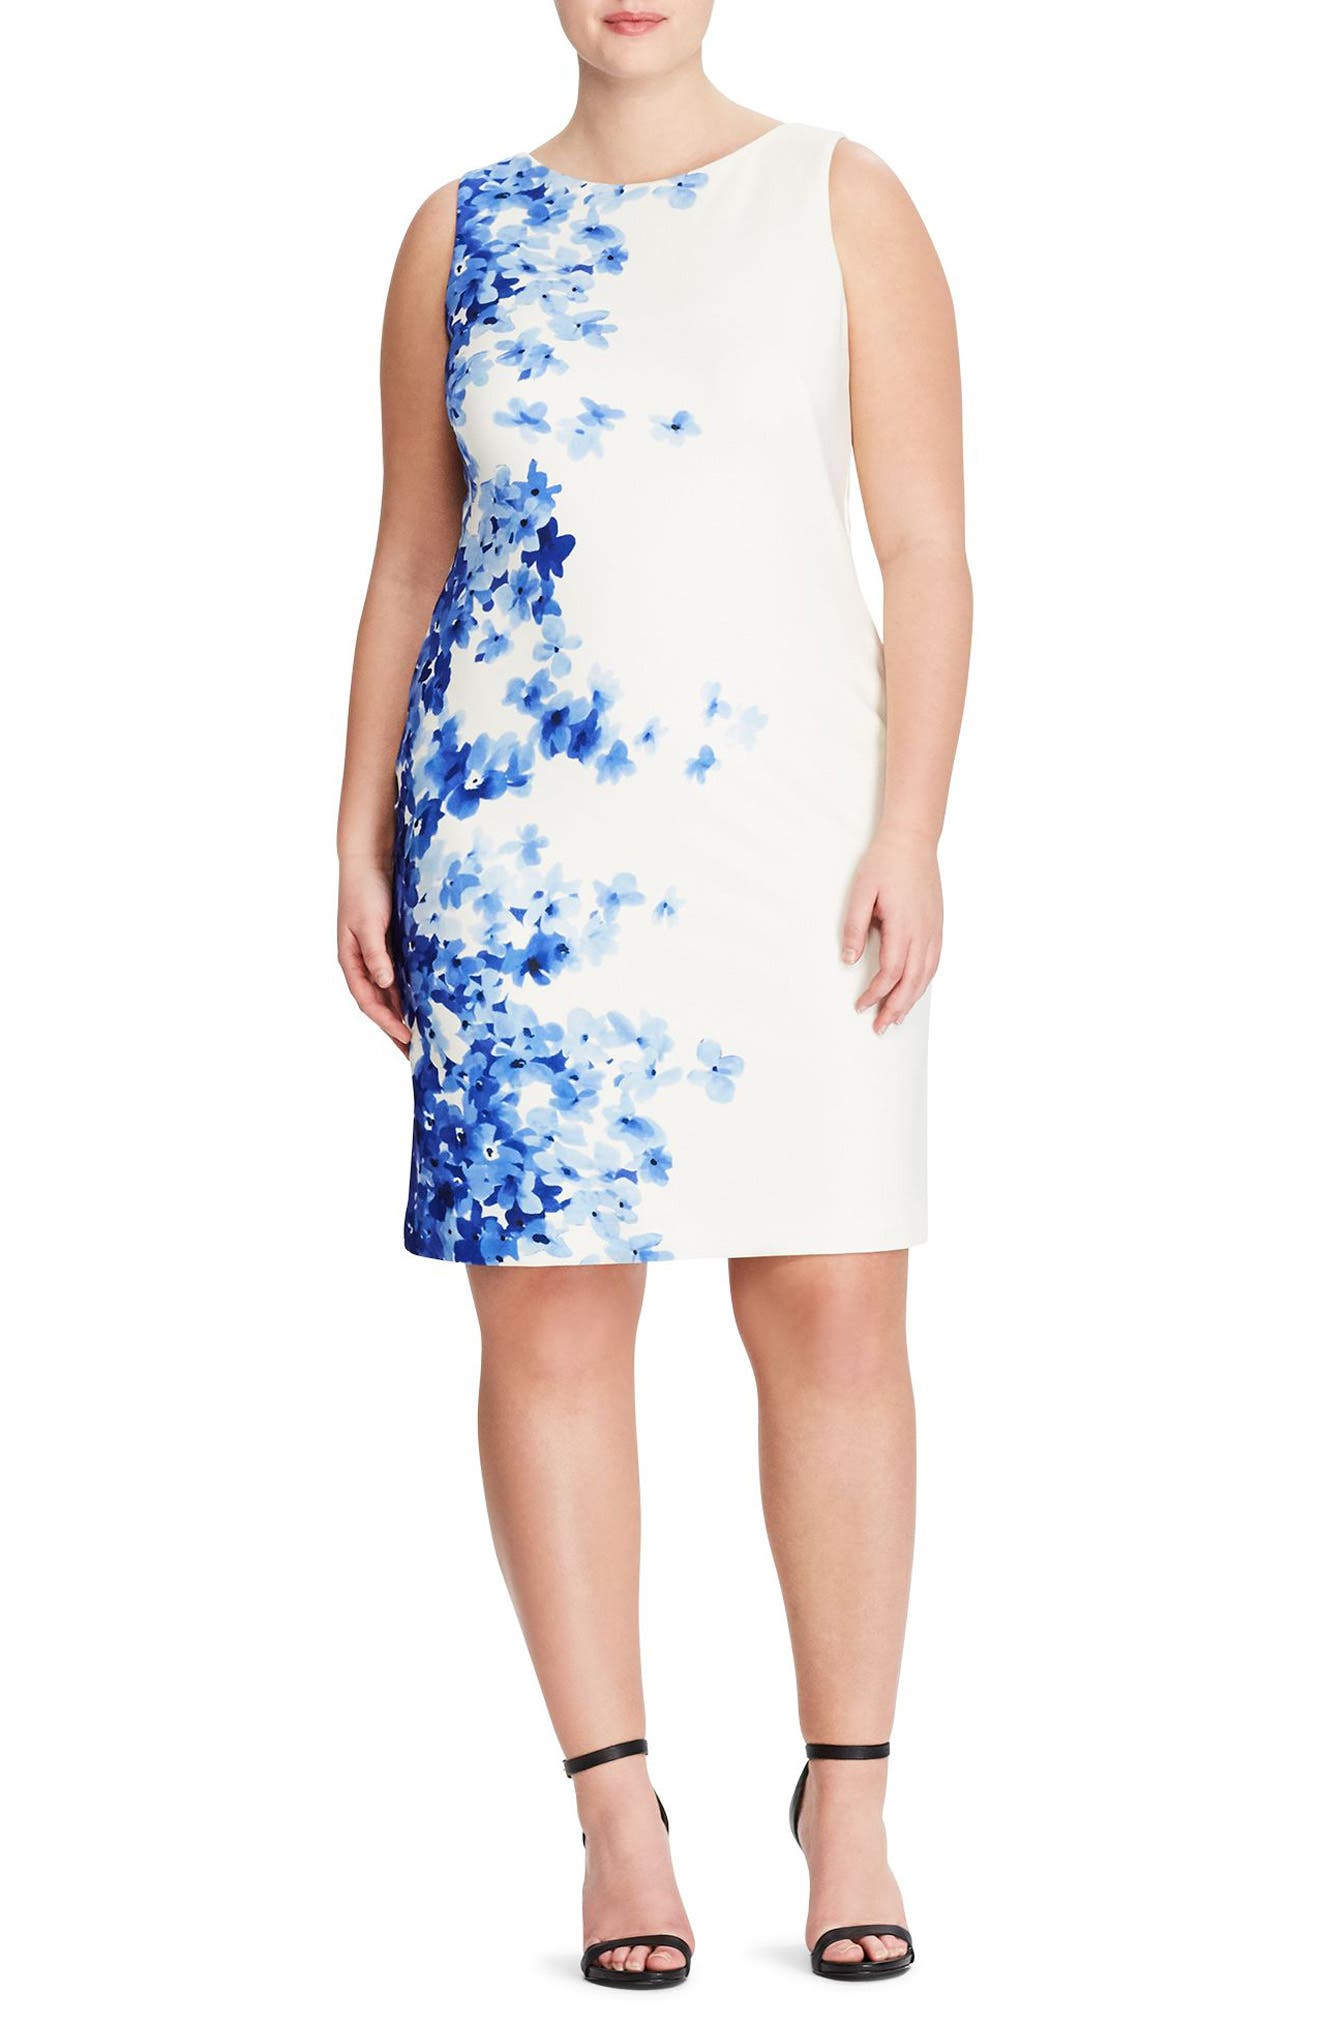 Lauren Ralph Lauren Toralina Caspian Sea Border Sheath Dress (Plus Size)